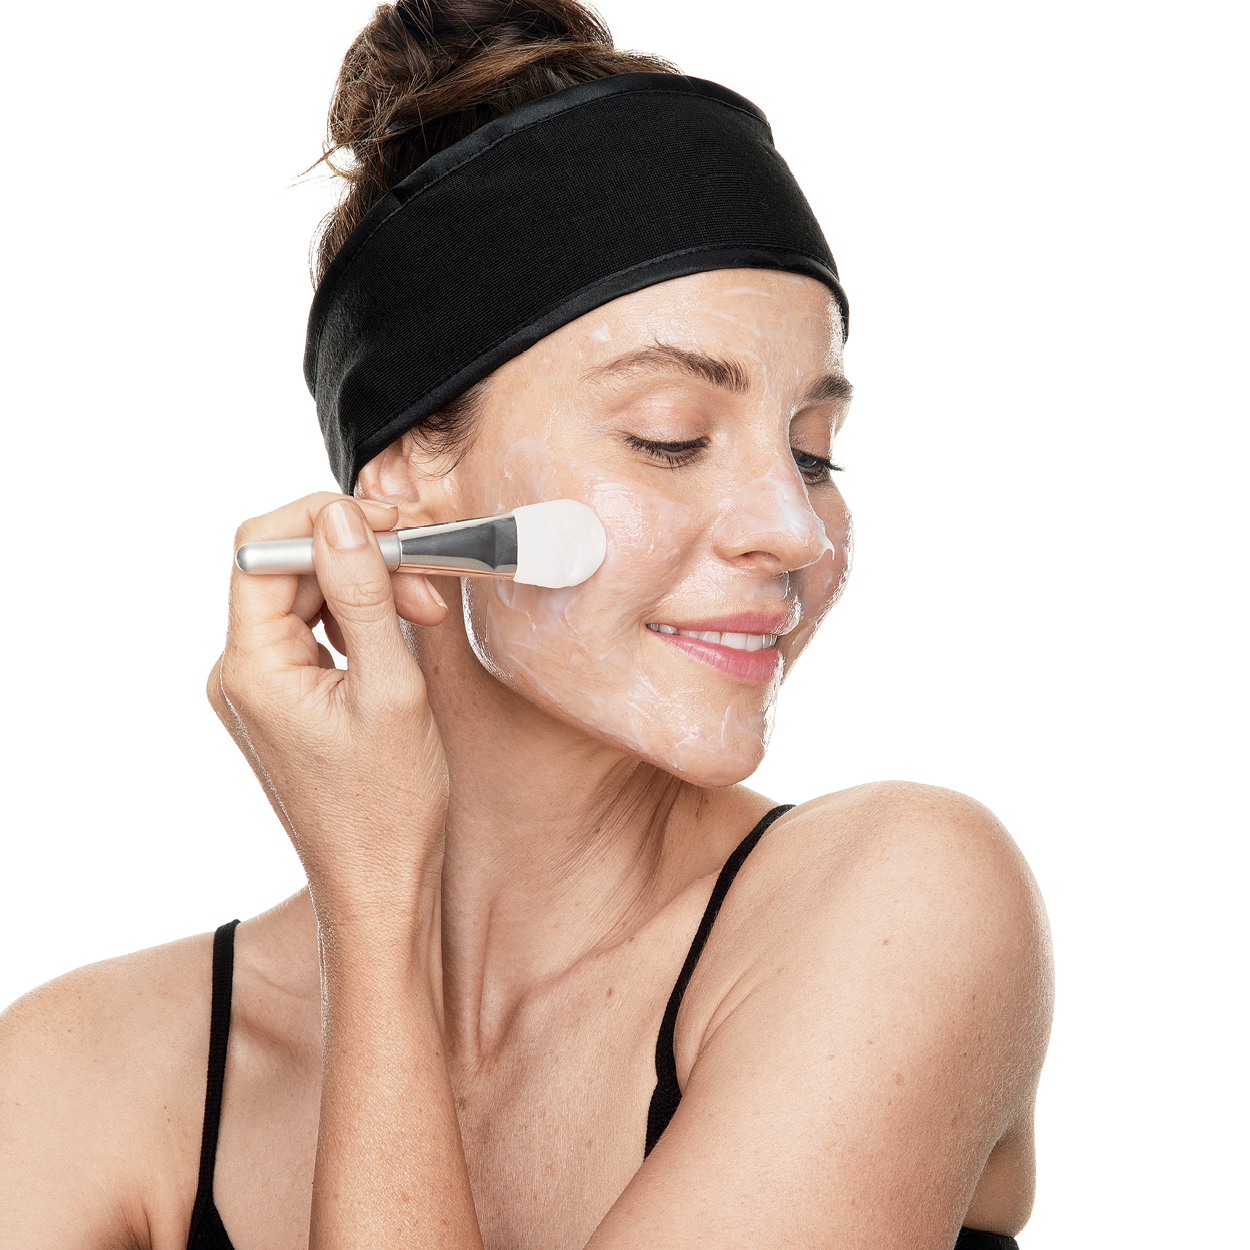 Say yes to firmer contours